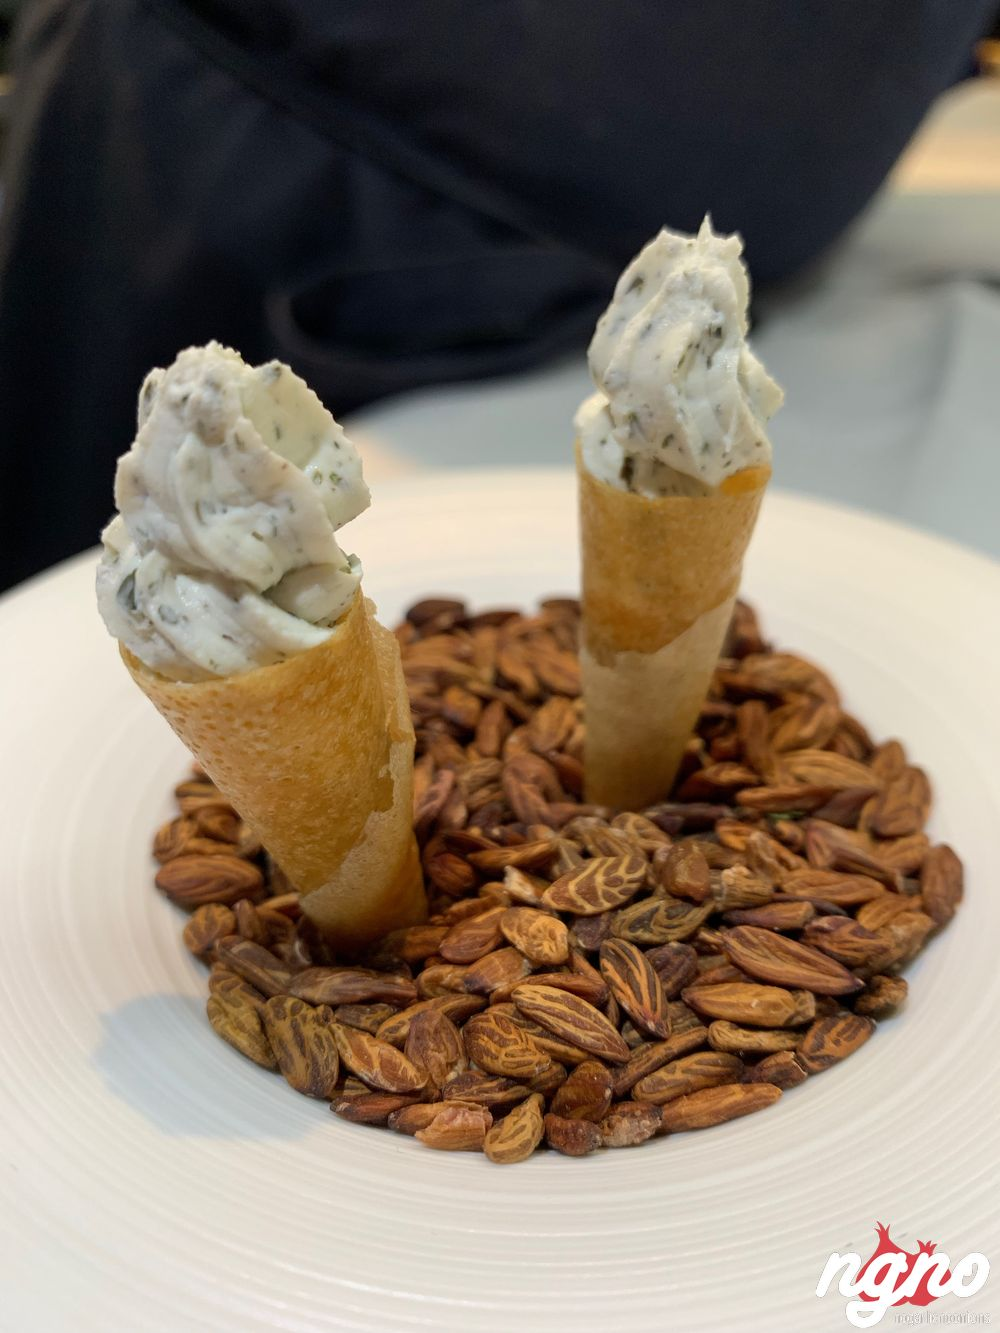 alan-geaam-starred-michelin-chef-paris-nogarlicnoonions-722019-02-18-07-51-252020-01-15-08-19-48